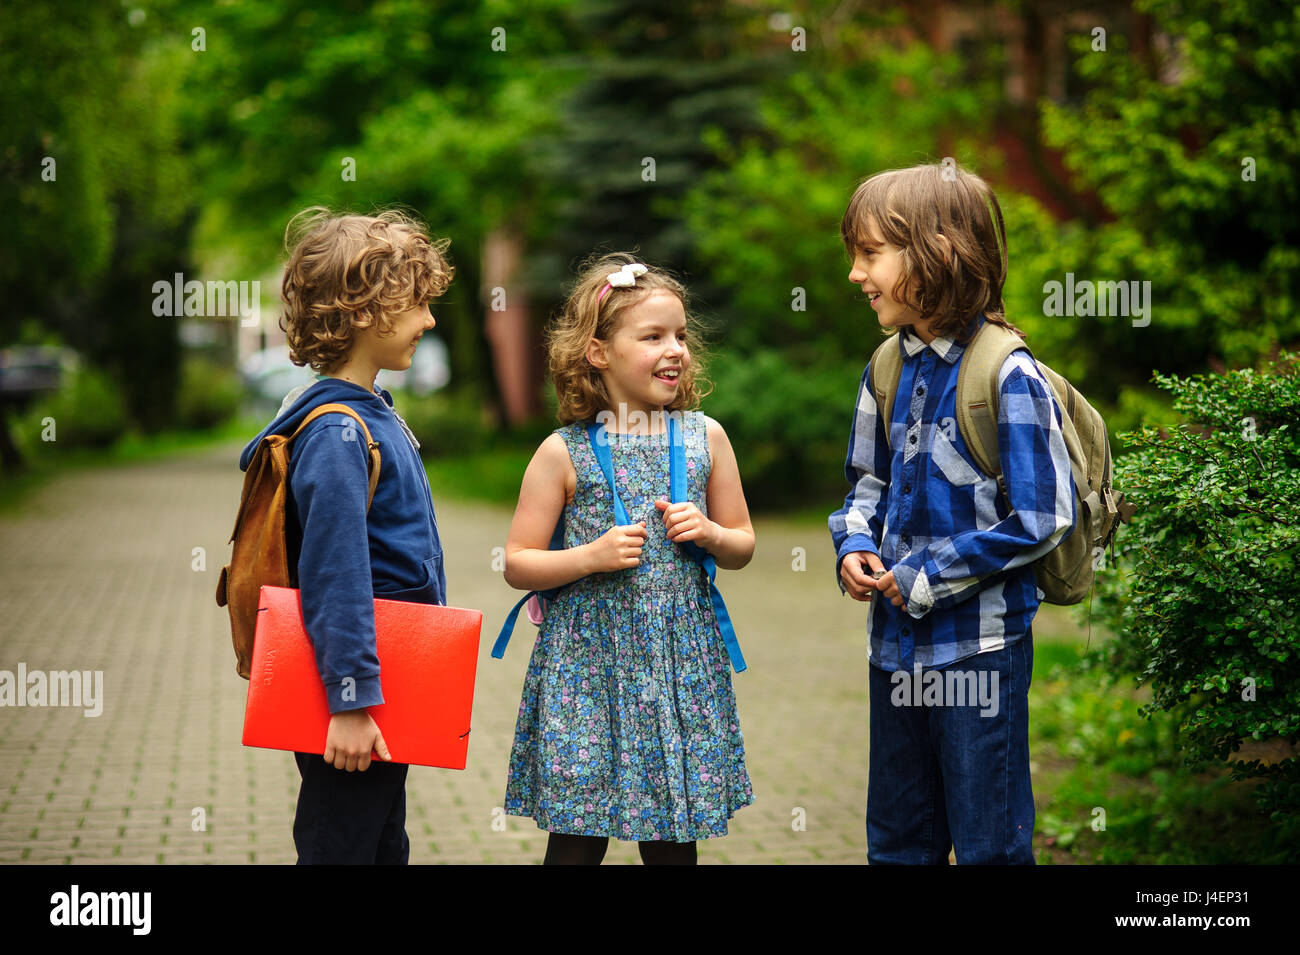 Cute little school students briskly talk on the schoolyard. Children have a good mood. Warm spring morning. Behind - Stock Image